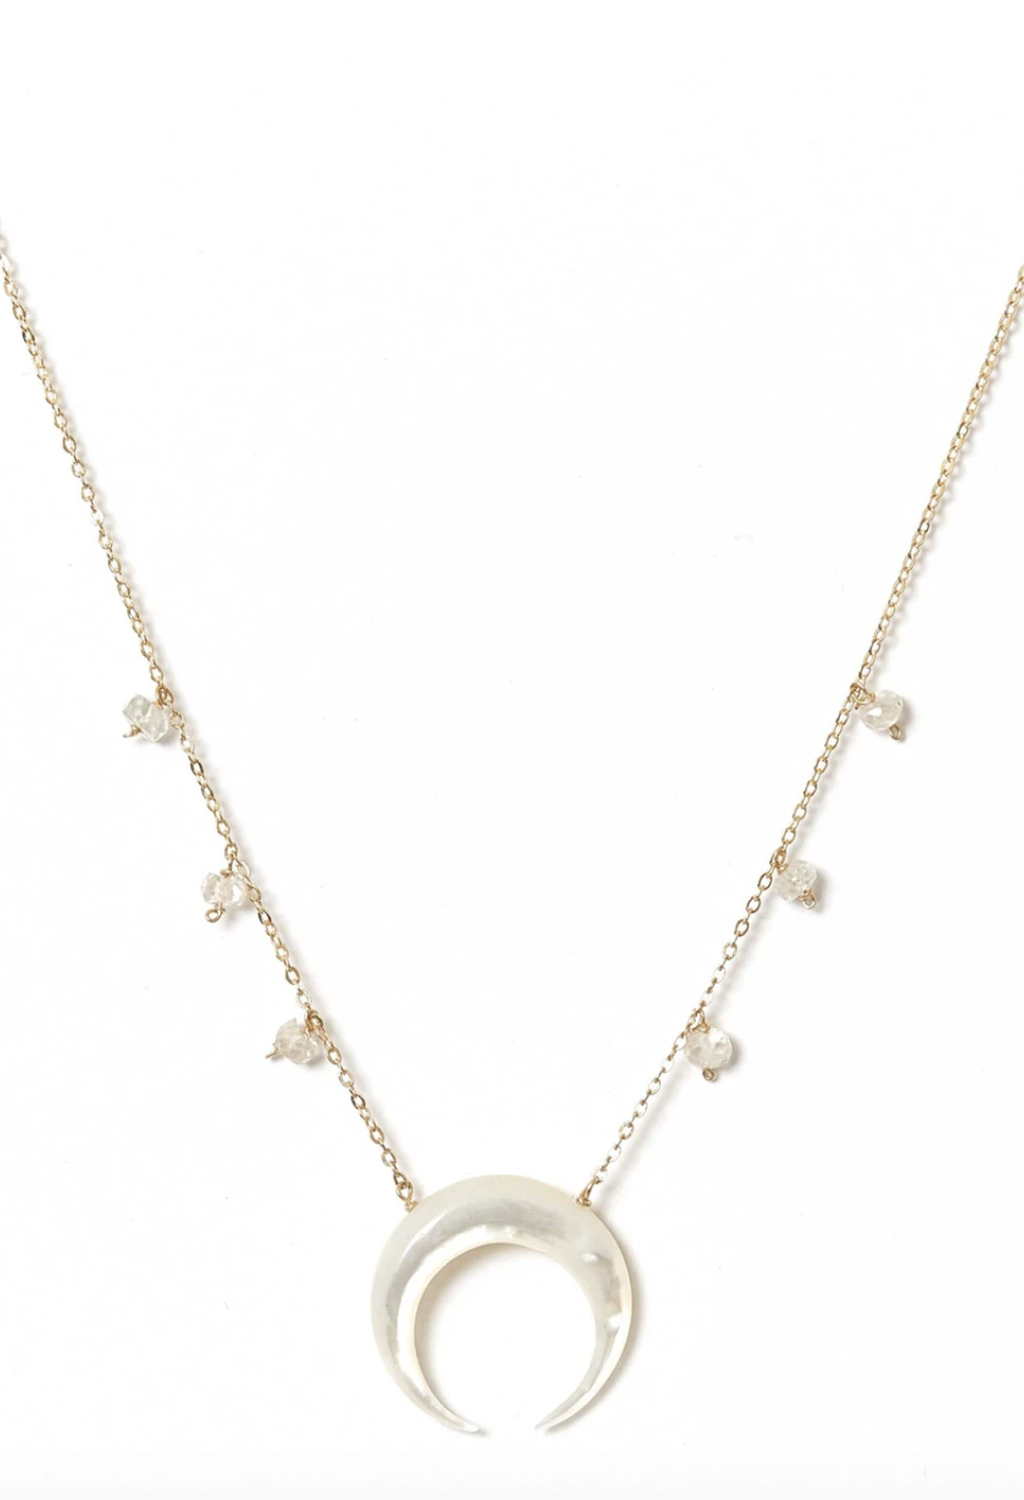 Milly Moon Necklace 16""